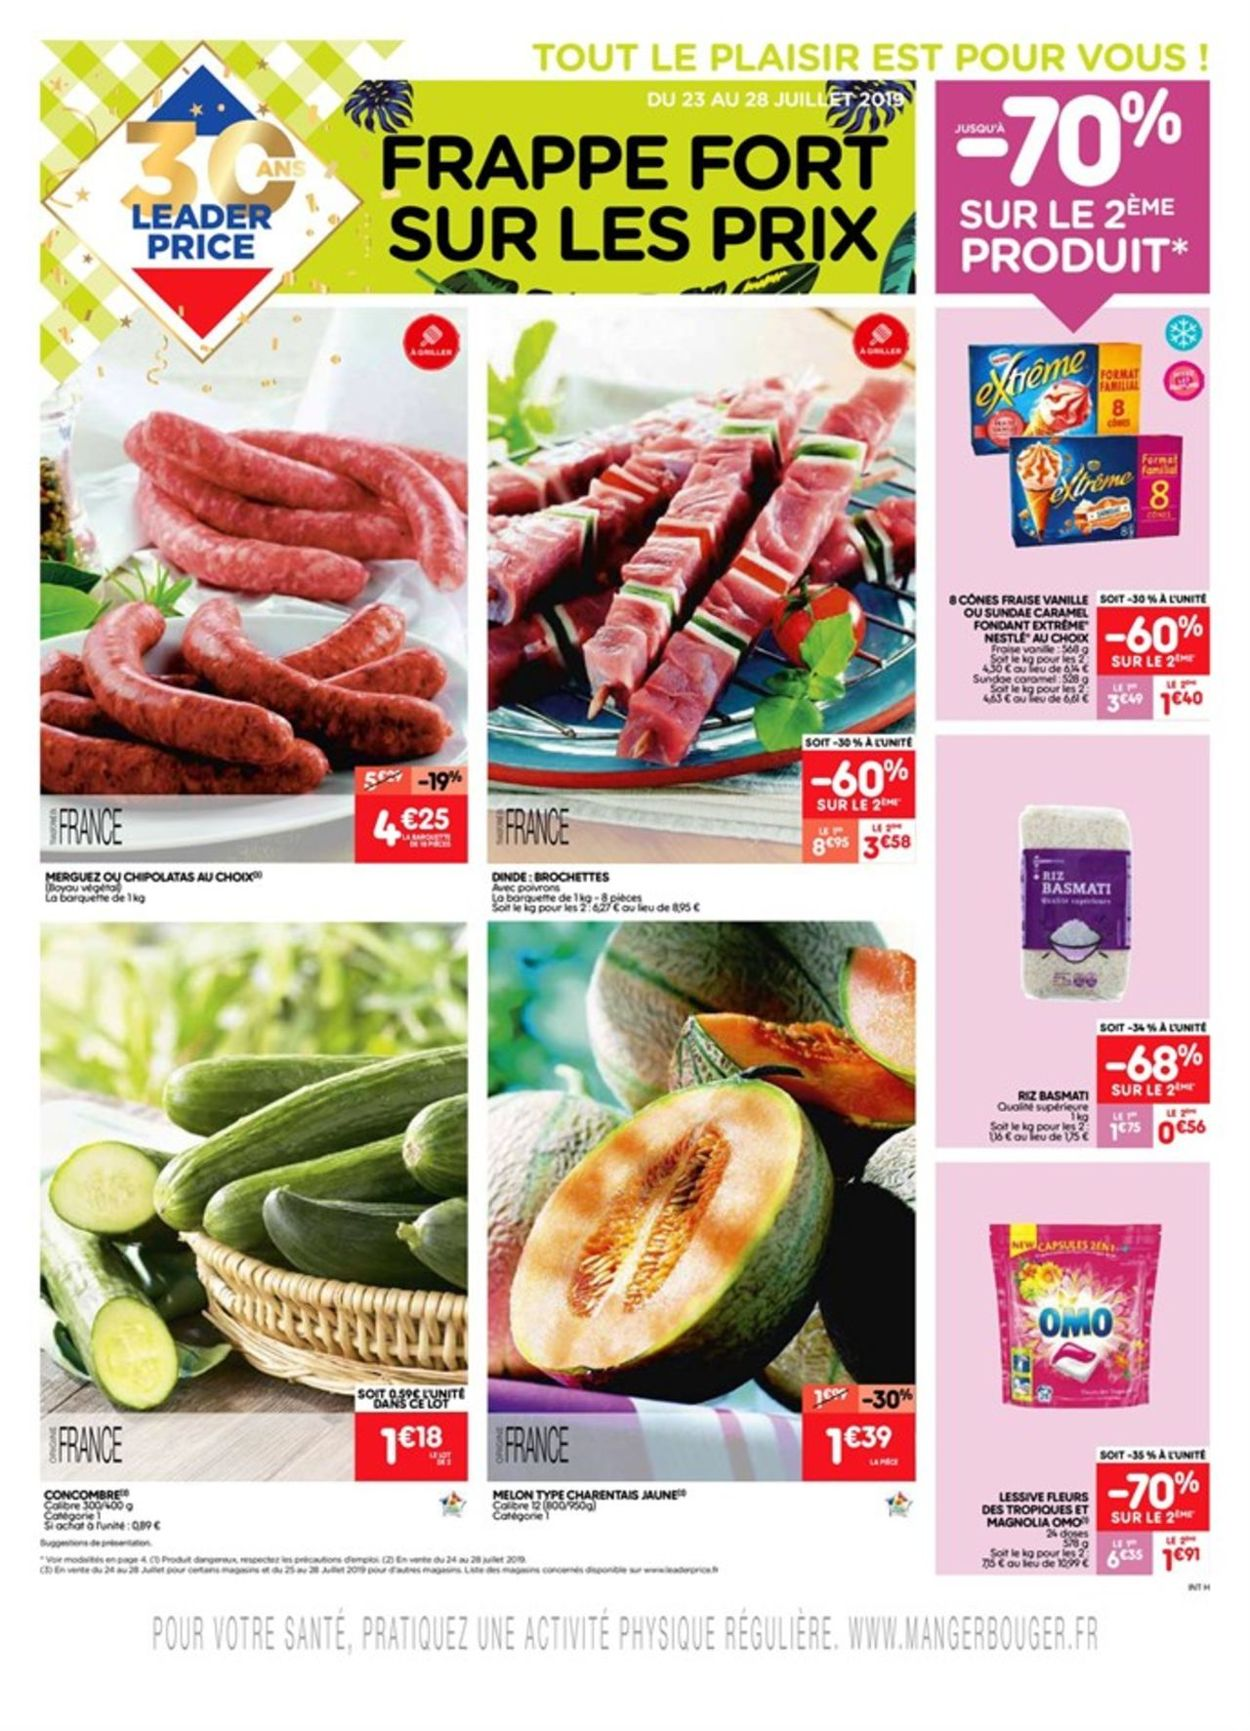 Leader Price Catalogue - 23.07-28.07.2019